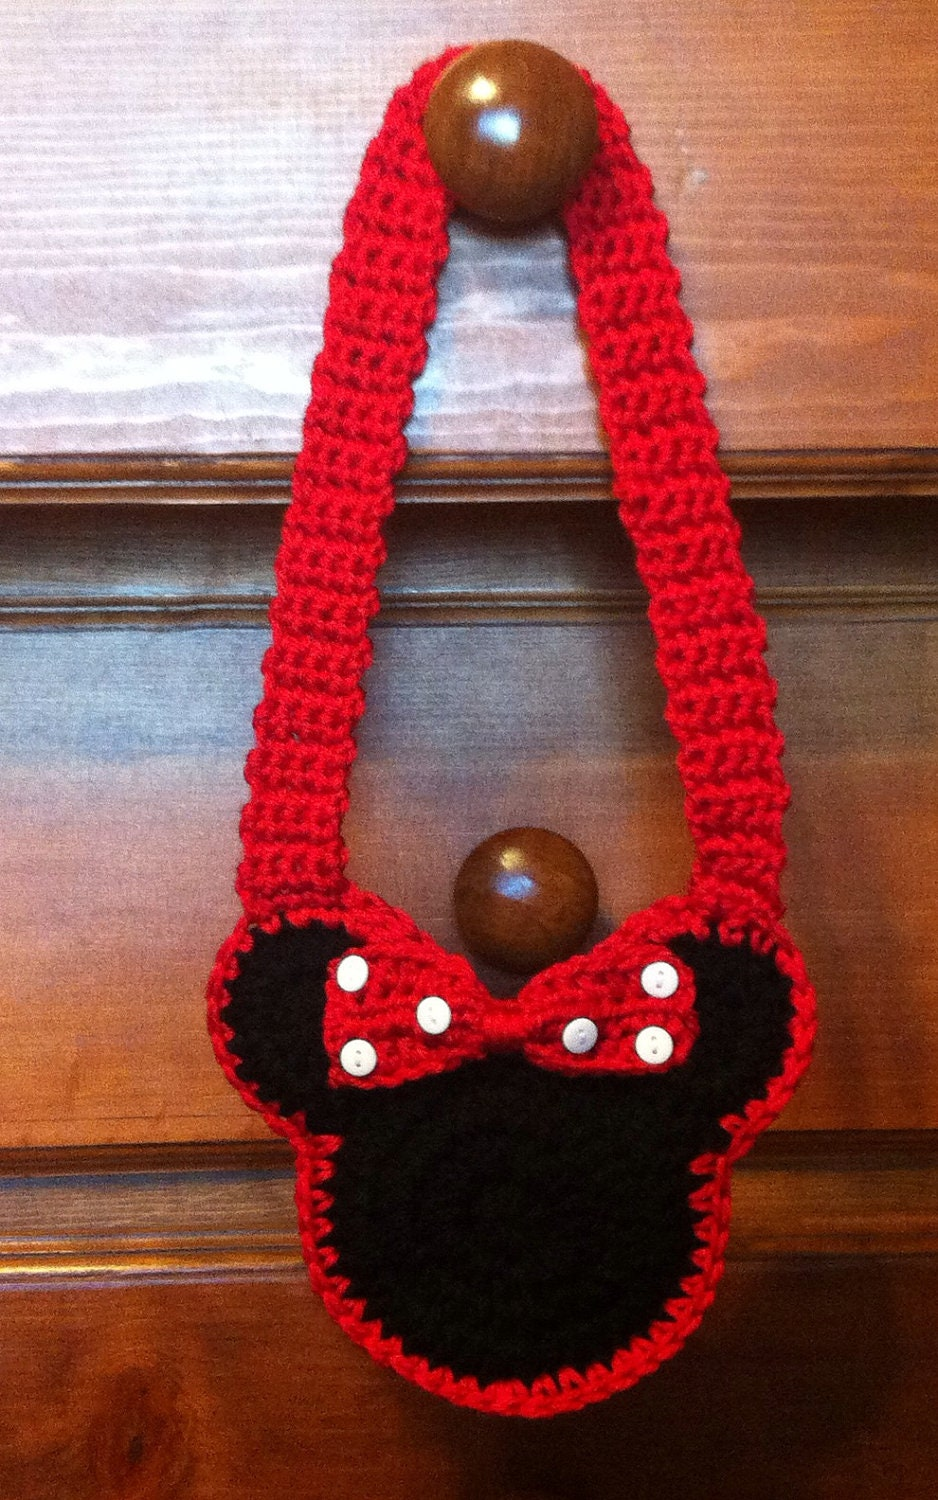 Items similar to minnie mouse child s crochet purse on etsy